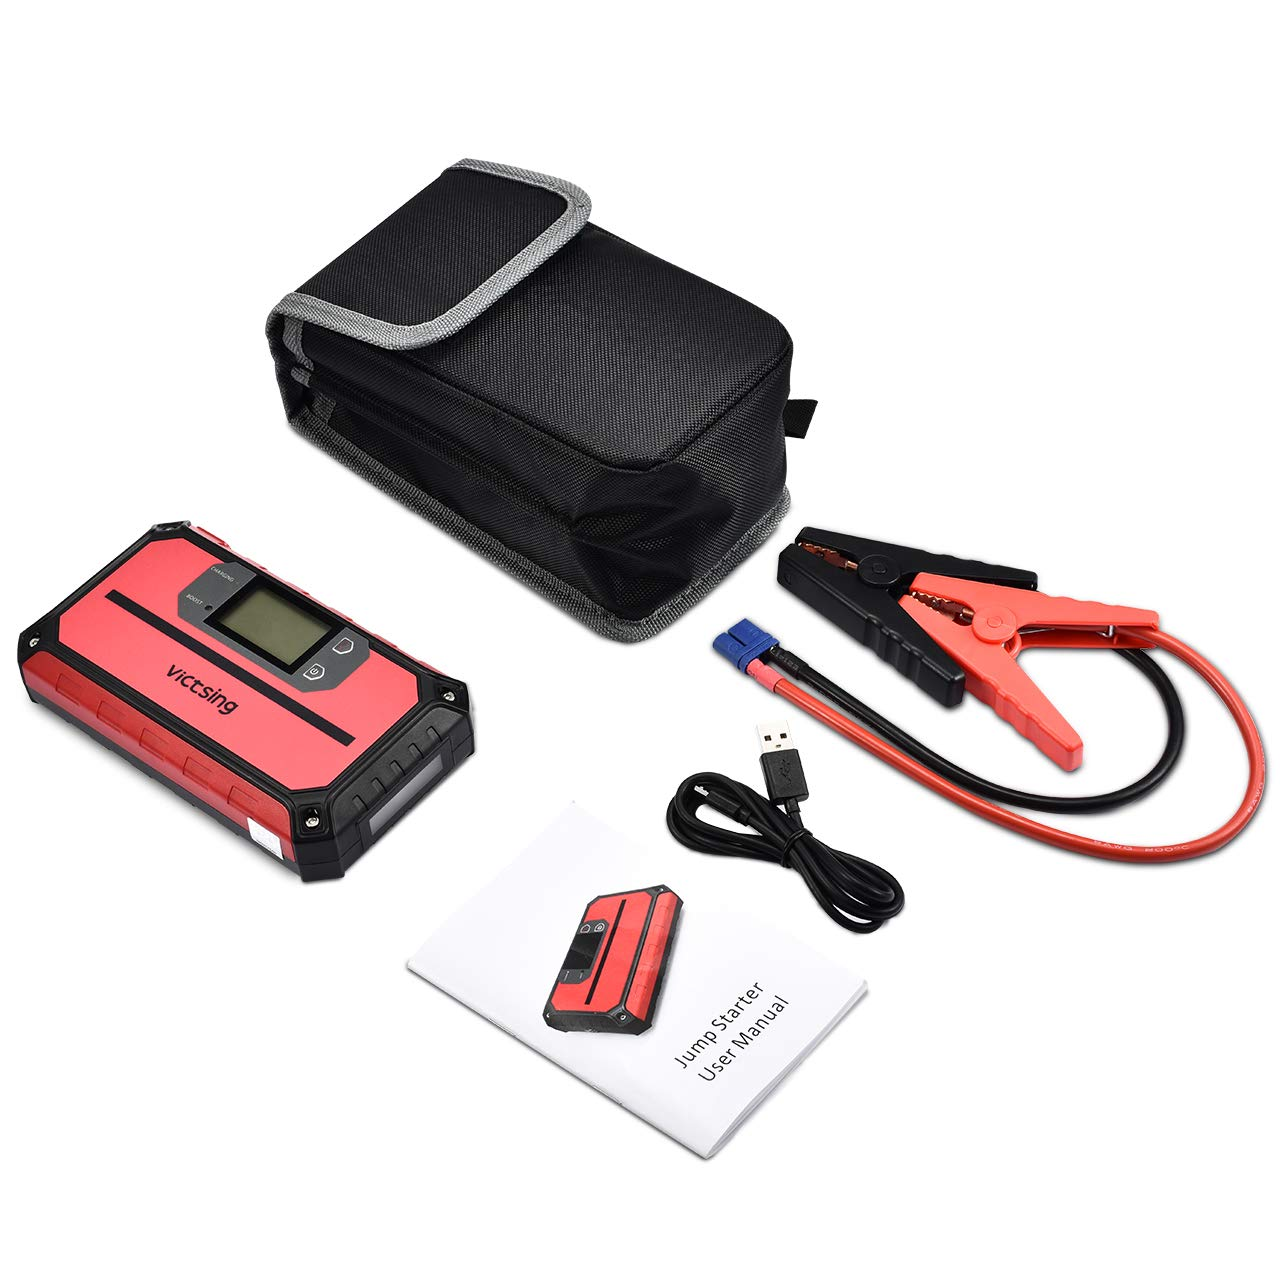 VicTsing Portable Car Jump Starter 1000A Peak 20800mAh (Up to 8.0L Gas, 6.0L Diesel Engine), 12V Auto Battery Booster,5 in 1 Compact Power Pack with QC3.0 Output, Built-in Compass and LED Light by VicTsing (Image #7)